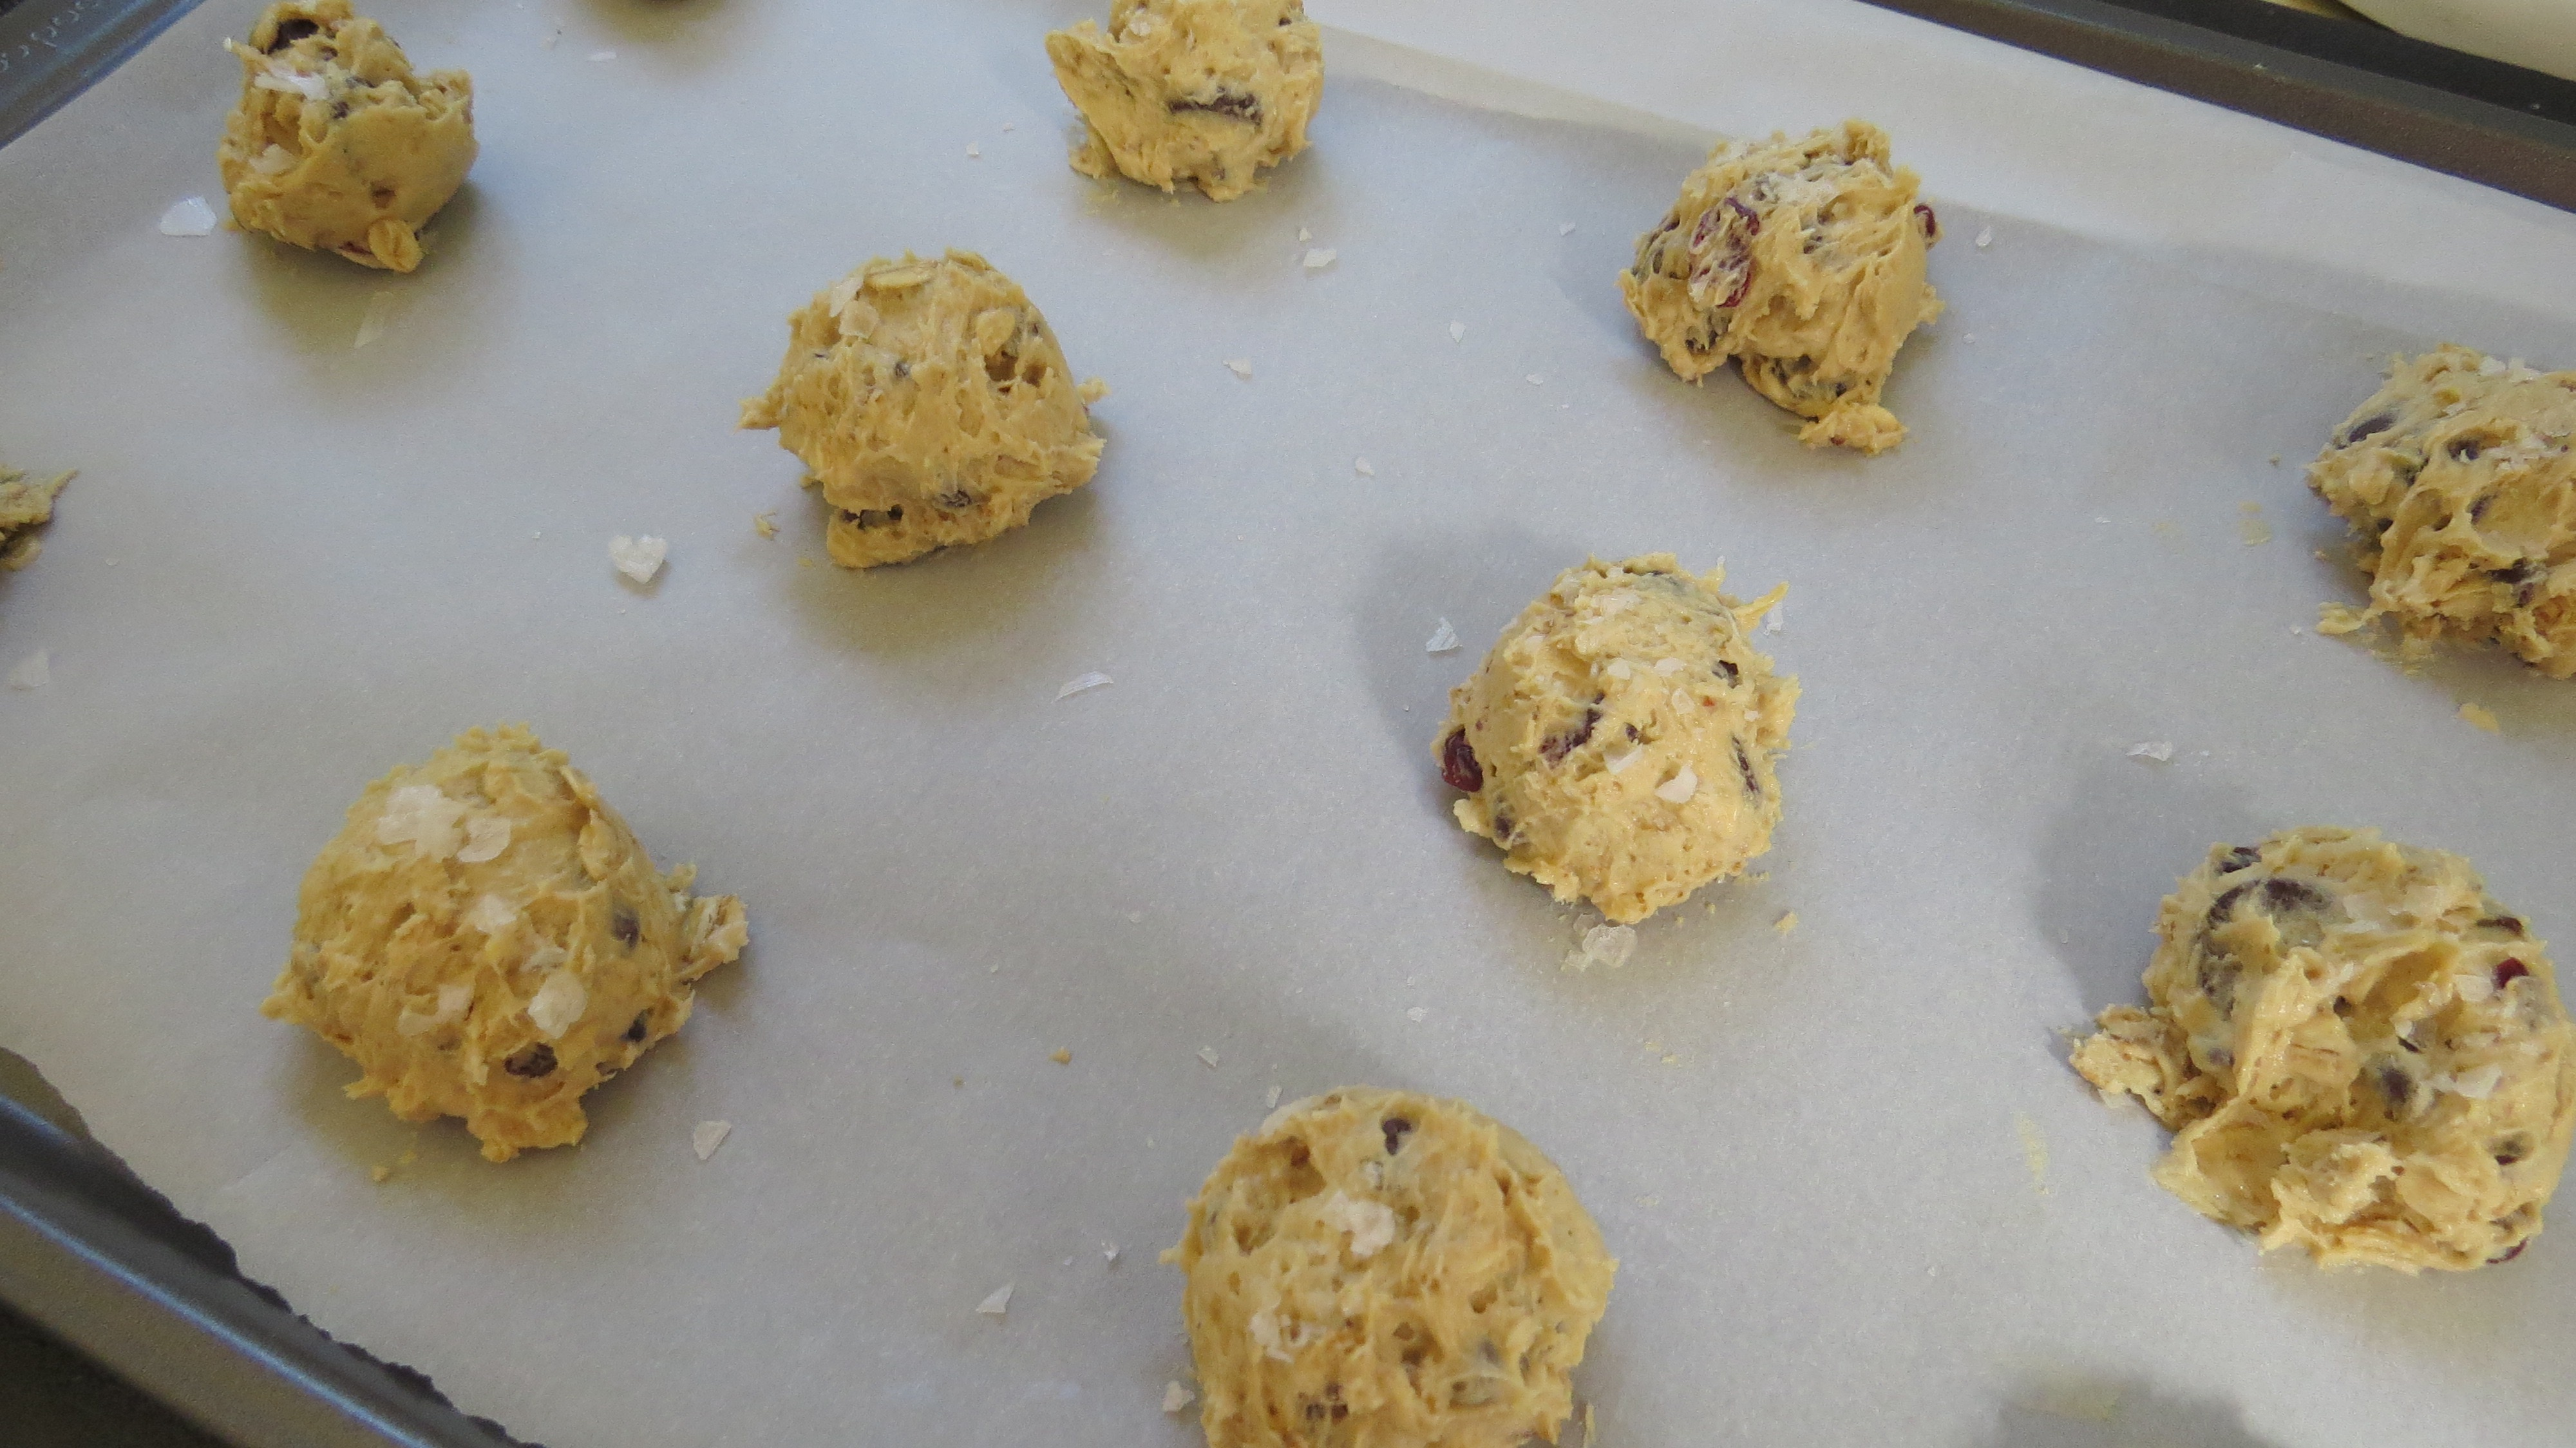 If you bake cookies often, please try a cookie scoop. It makes baking so much easier.